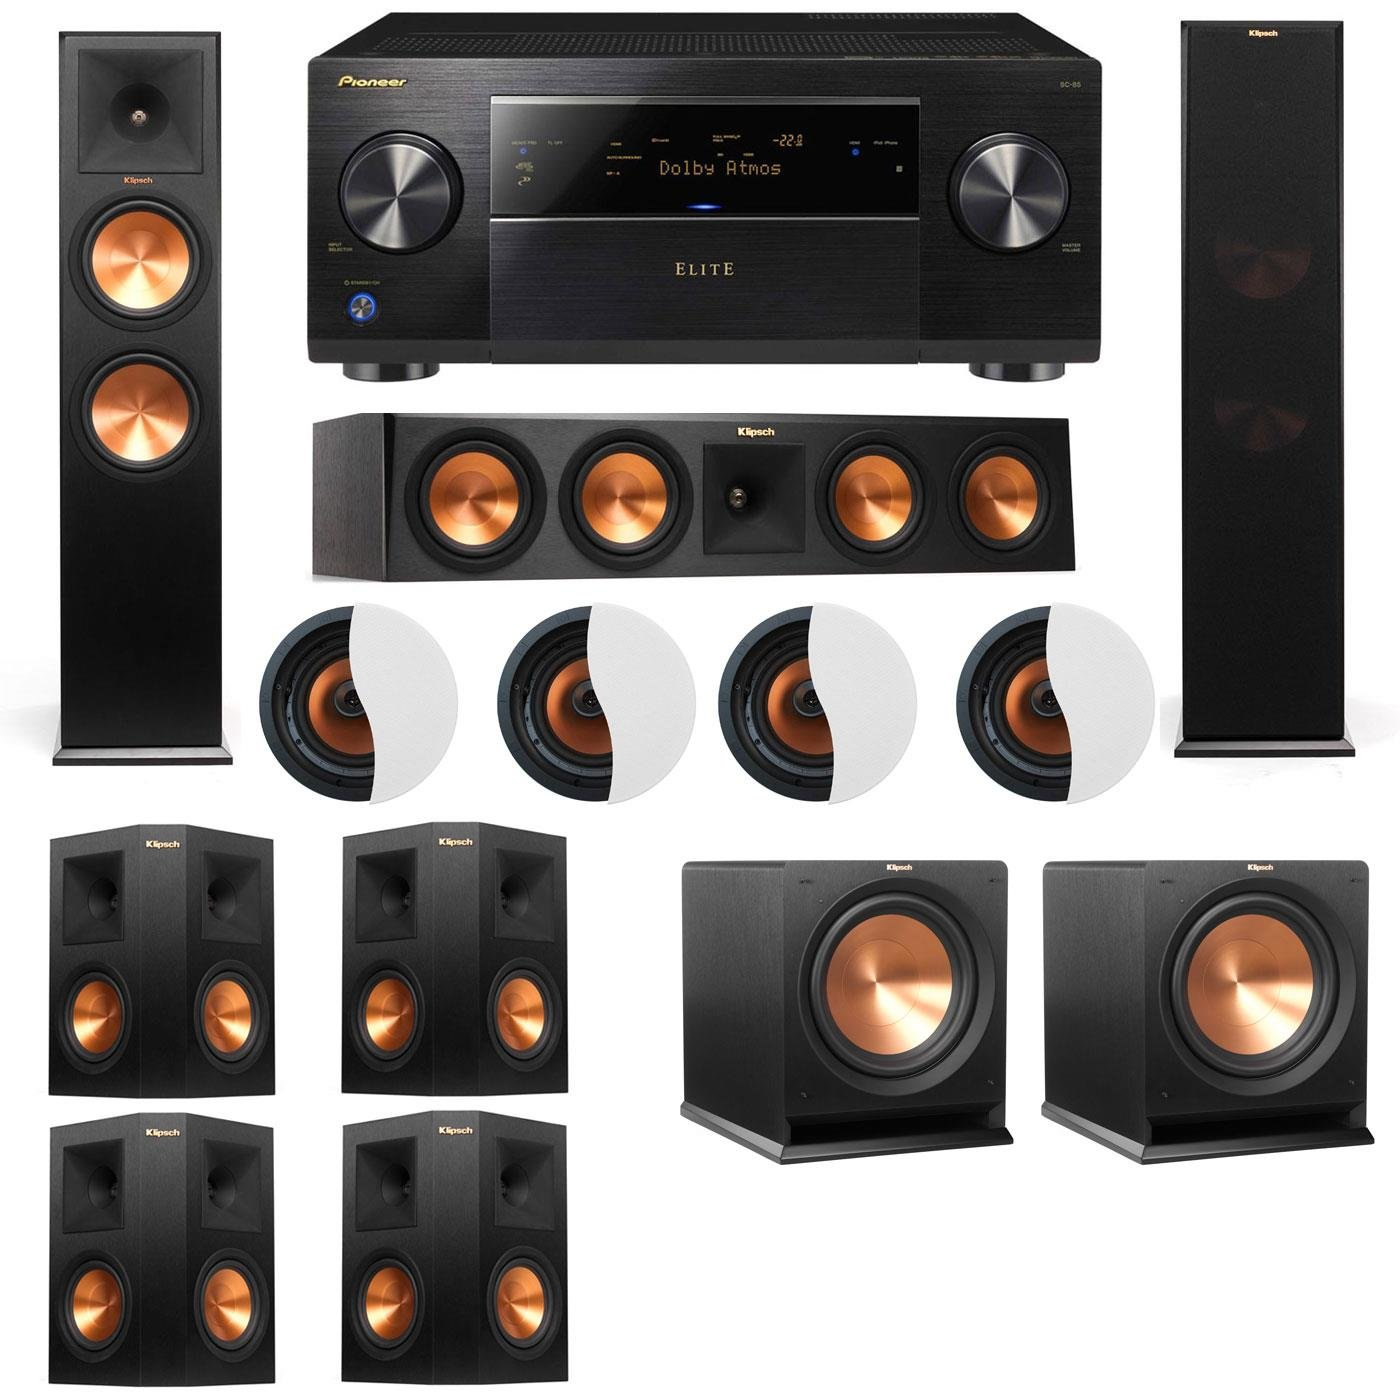 Dolby Atmos 7.2.4 Klipsch RP-280F Tower Speakers R112SW with Pioneer Elite SC-85 by Klipsch